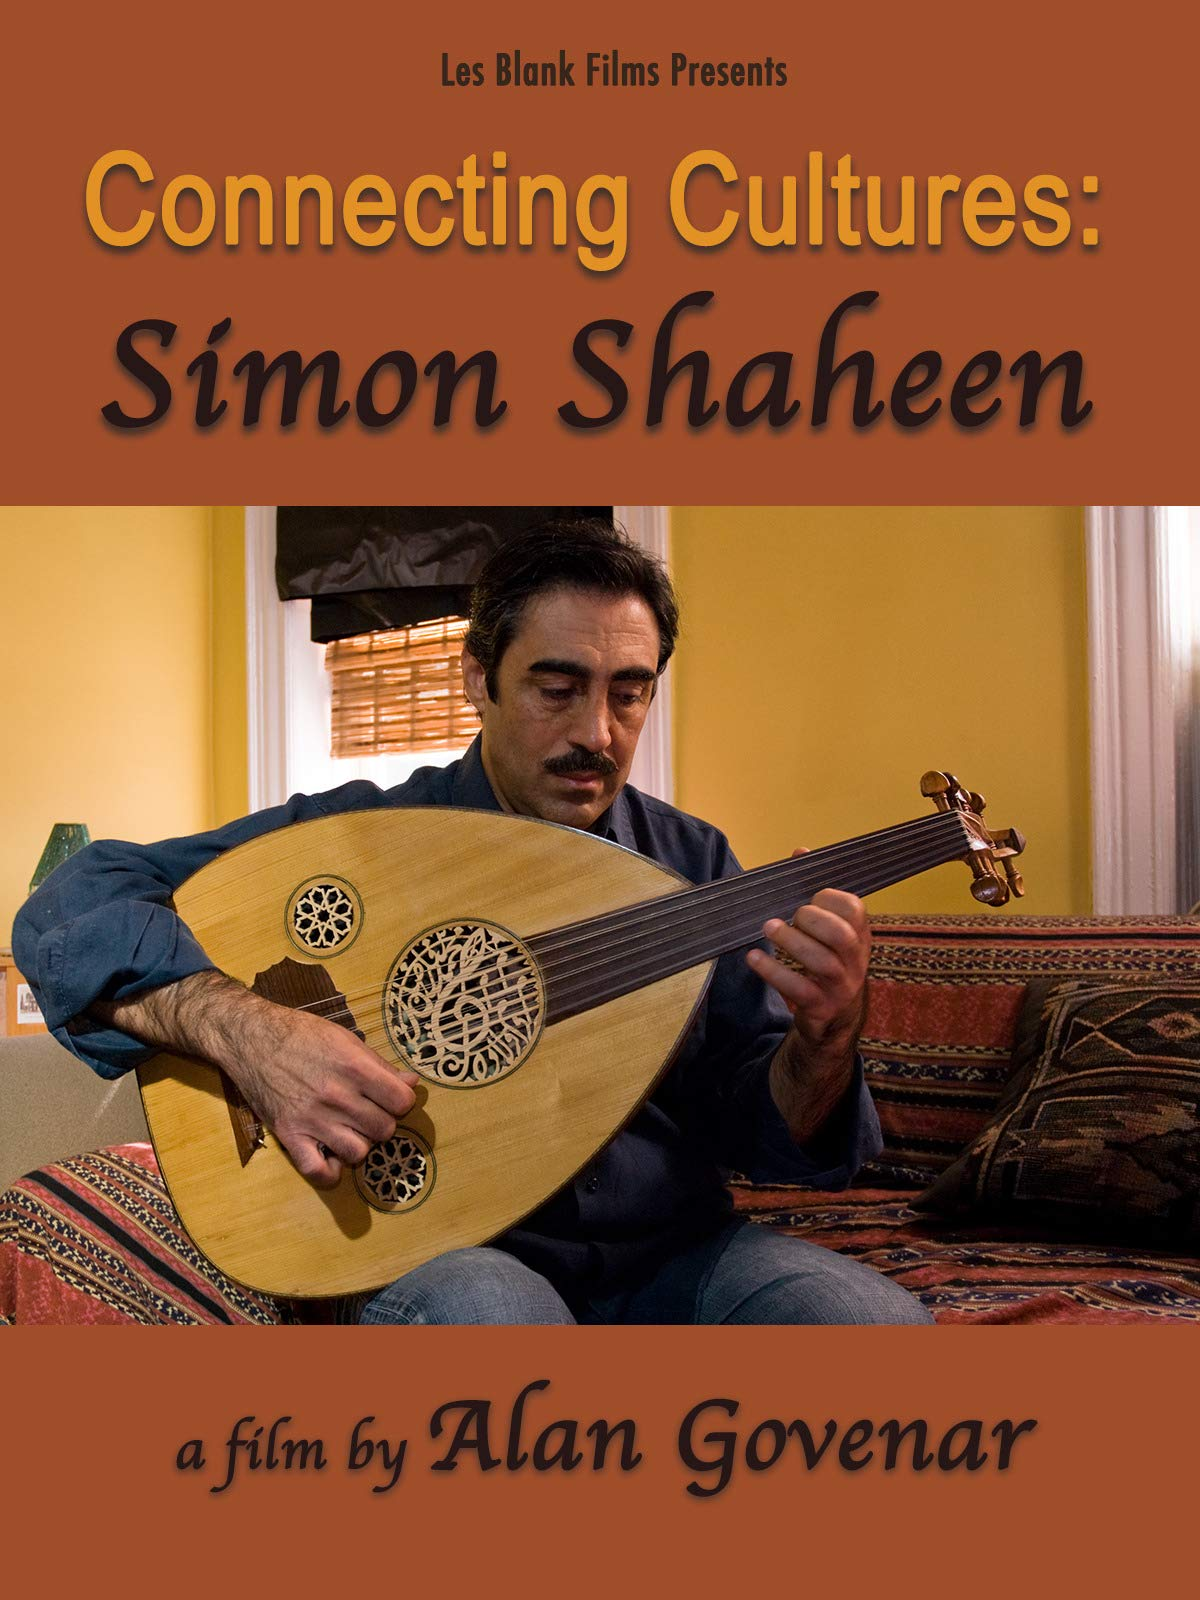 Simon Shaheen - Connecting Cultures on Amazon Prime Instant Video UK